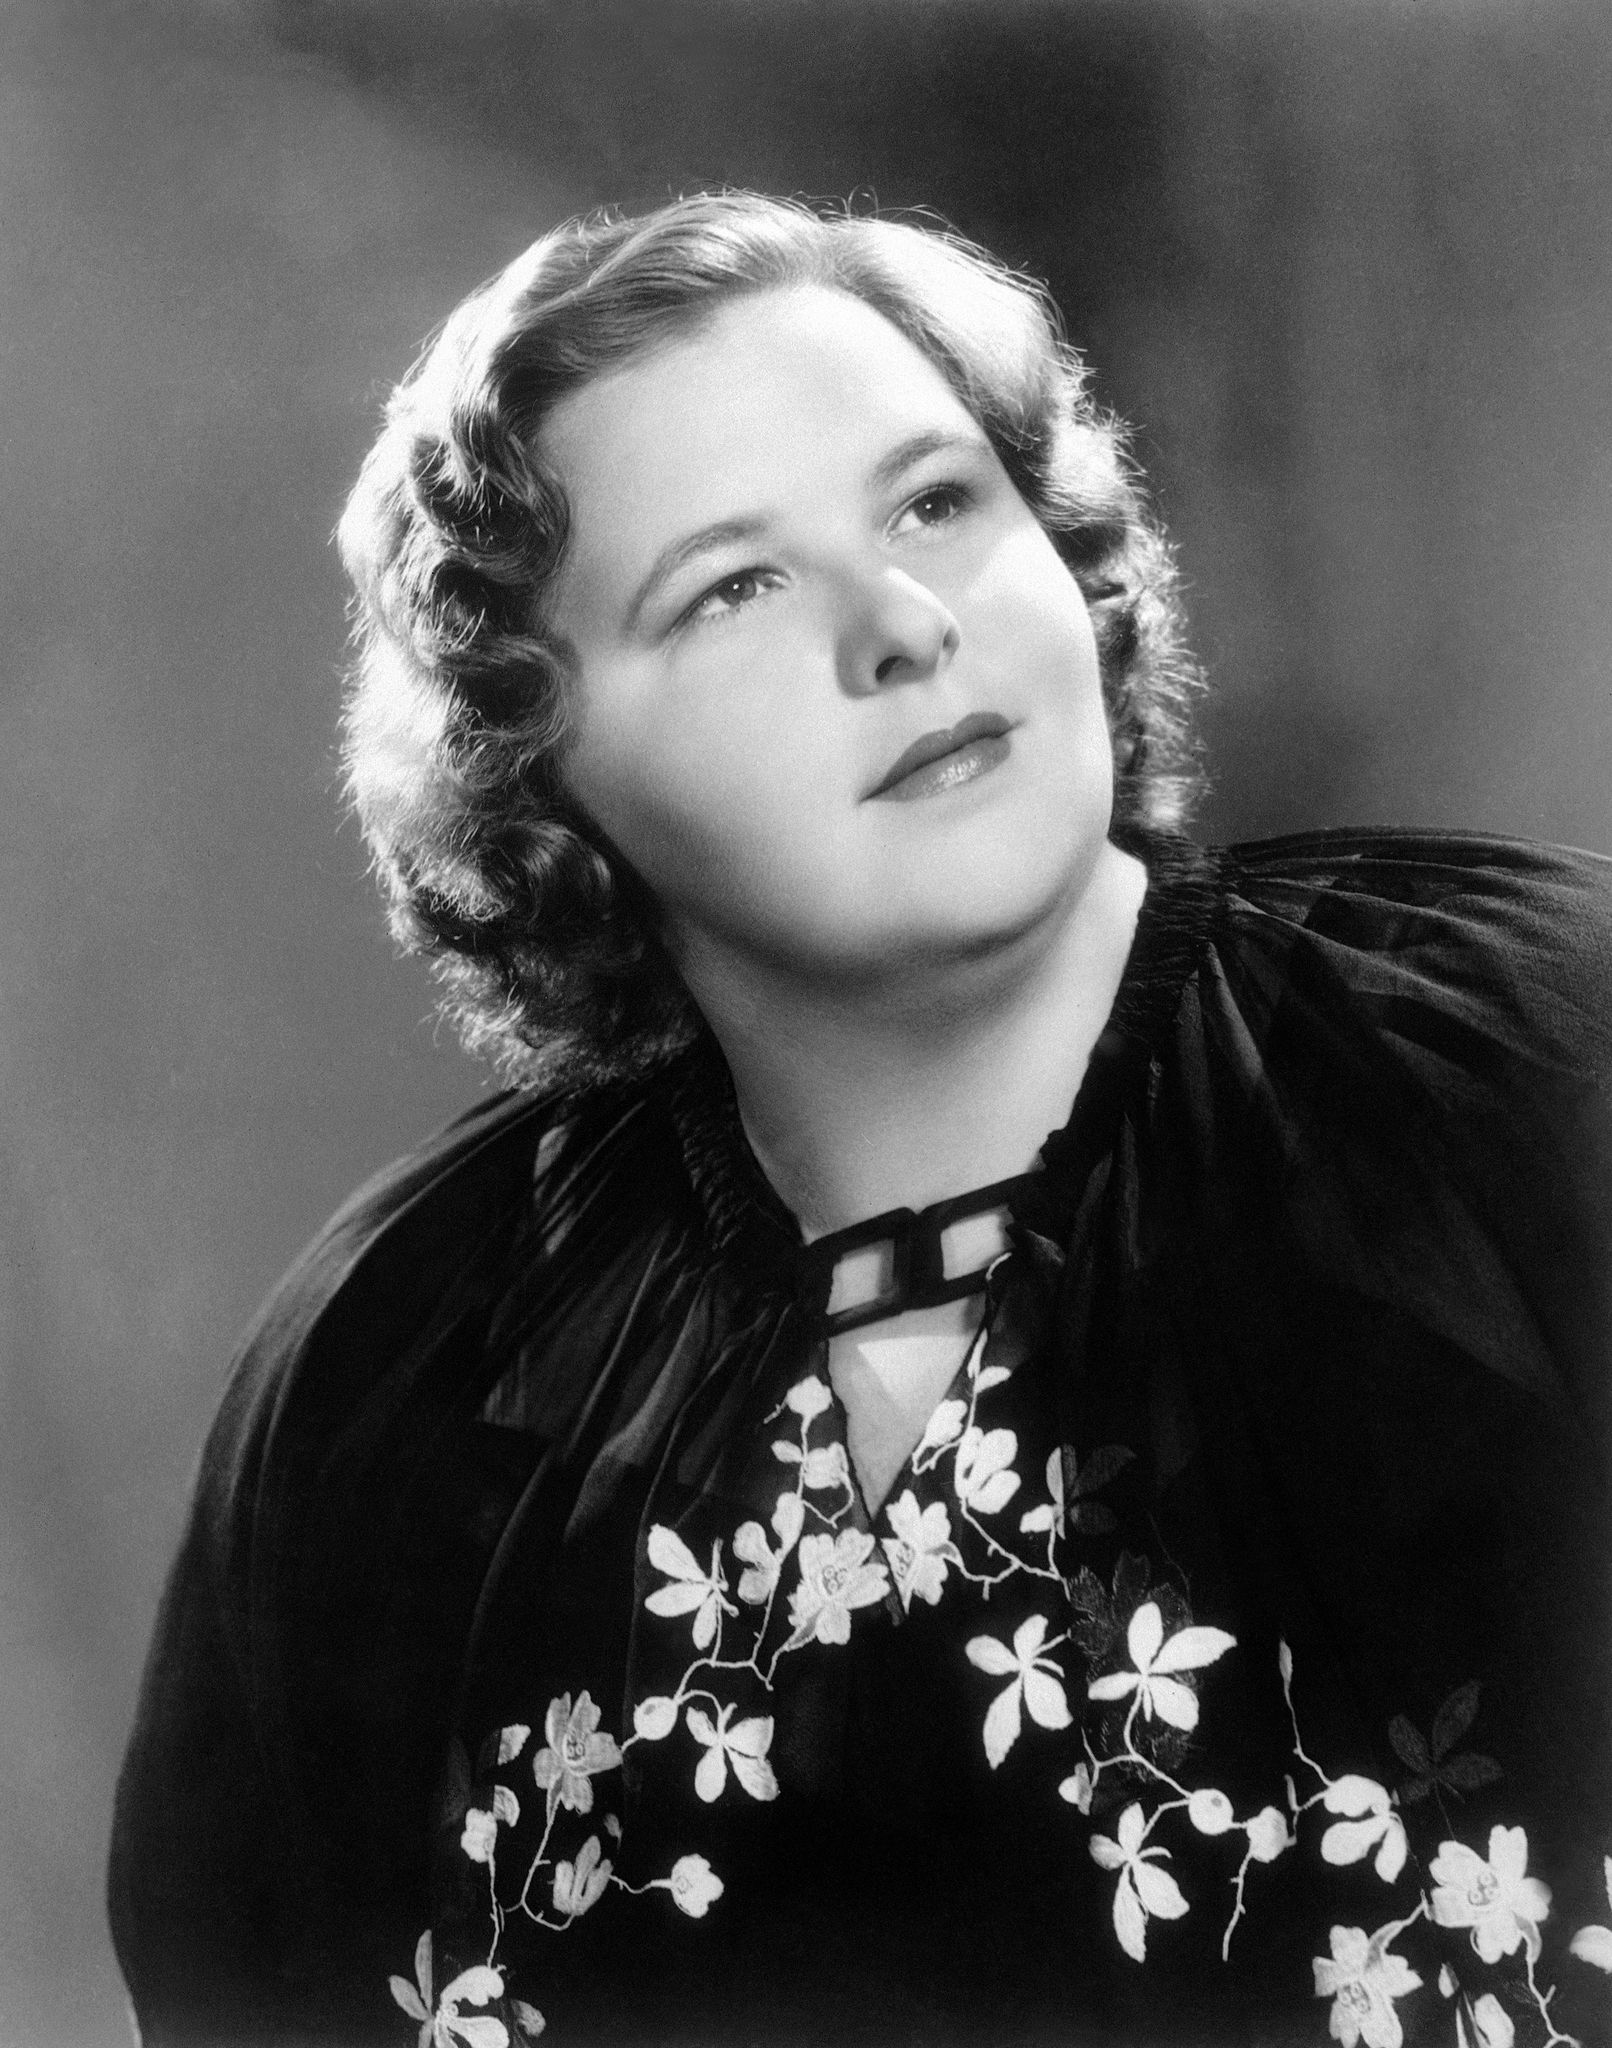 Kate Smith 'God Bless America' banned by Yankees over 'history of potential racism'